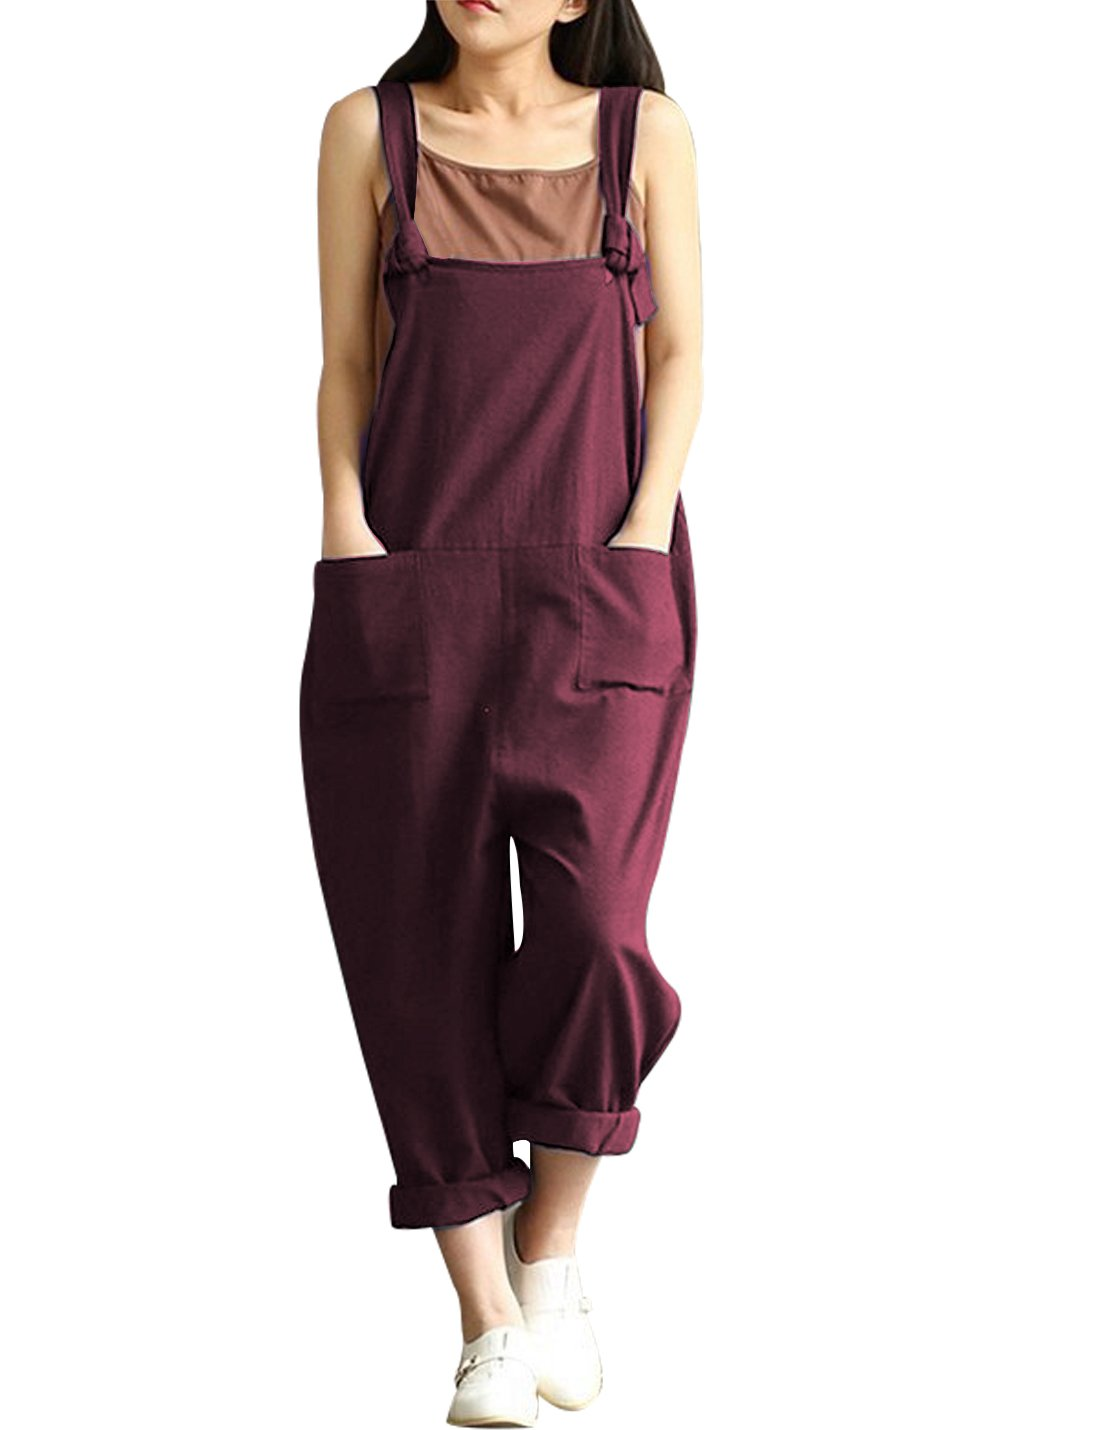 Yeokou Women's Linen Wide Leg Jumpsuit Rompers Overalls Harem Pants Plus Size (Medium, Style12Red) by Yeokou (Image #1)